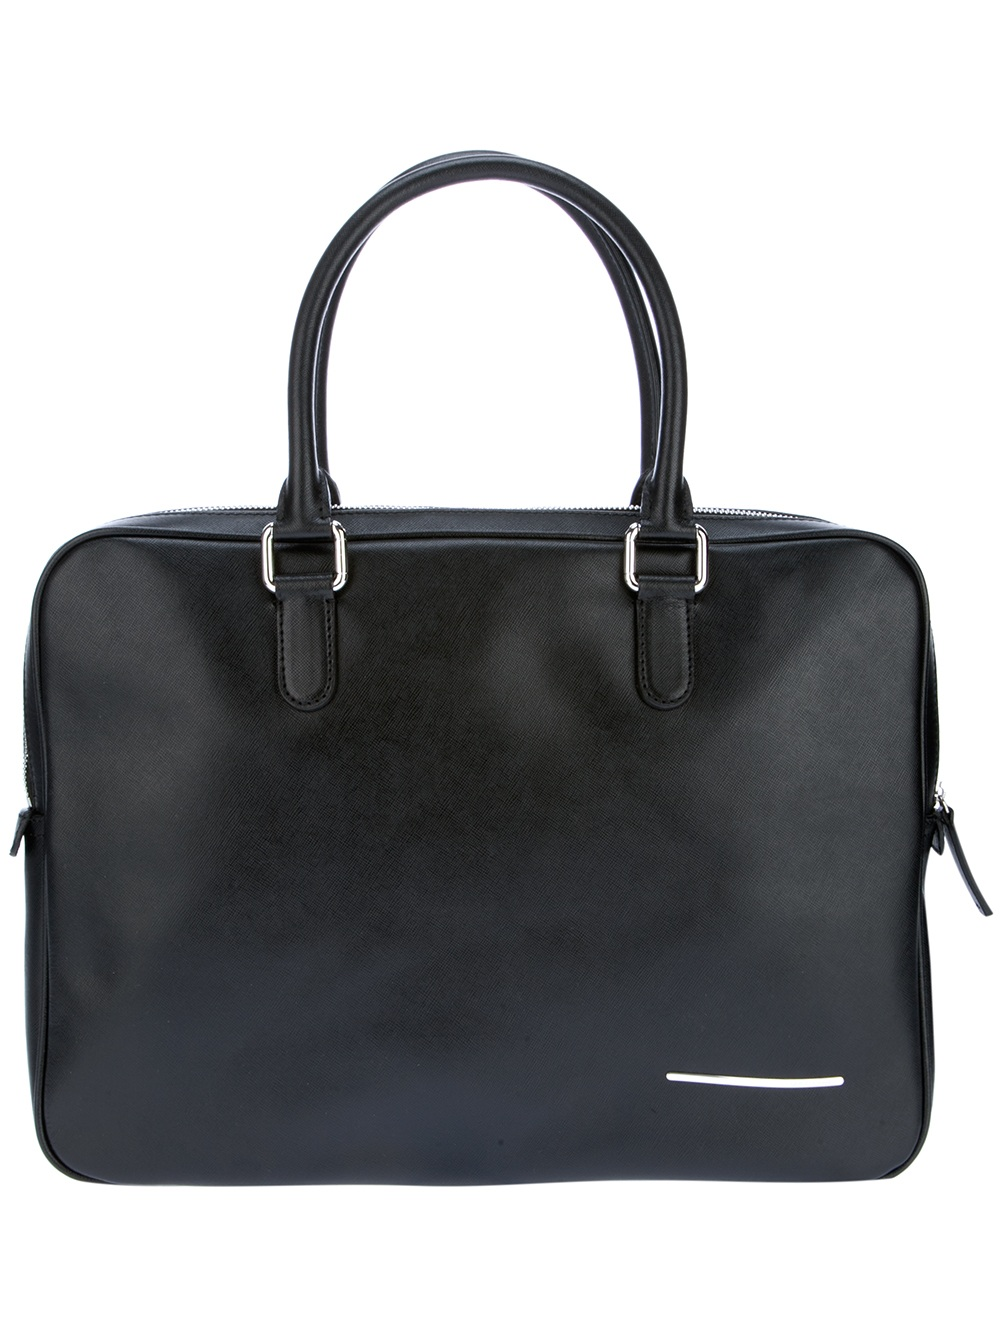 Giorgio Armani Branded Laptop Bag In Black For Men Lyst